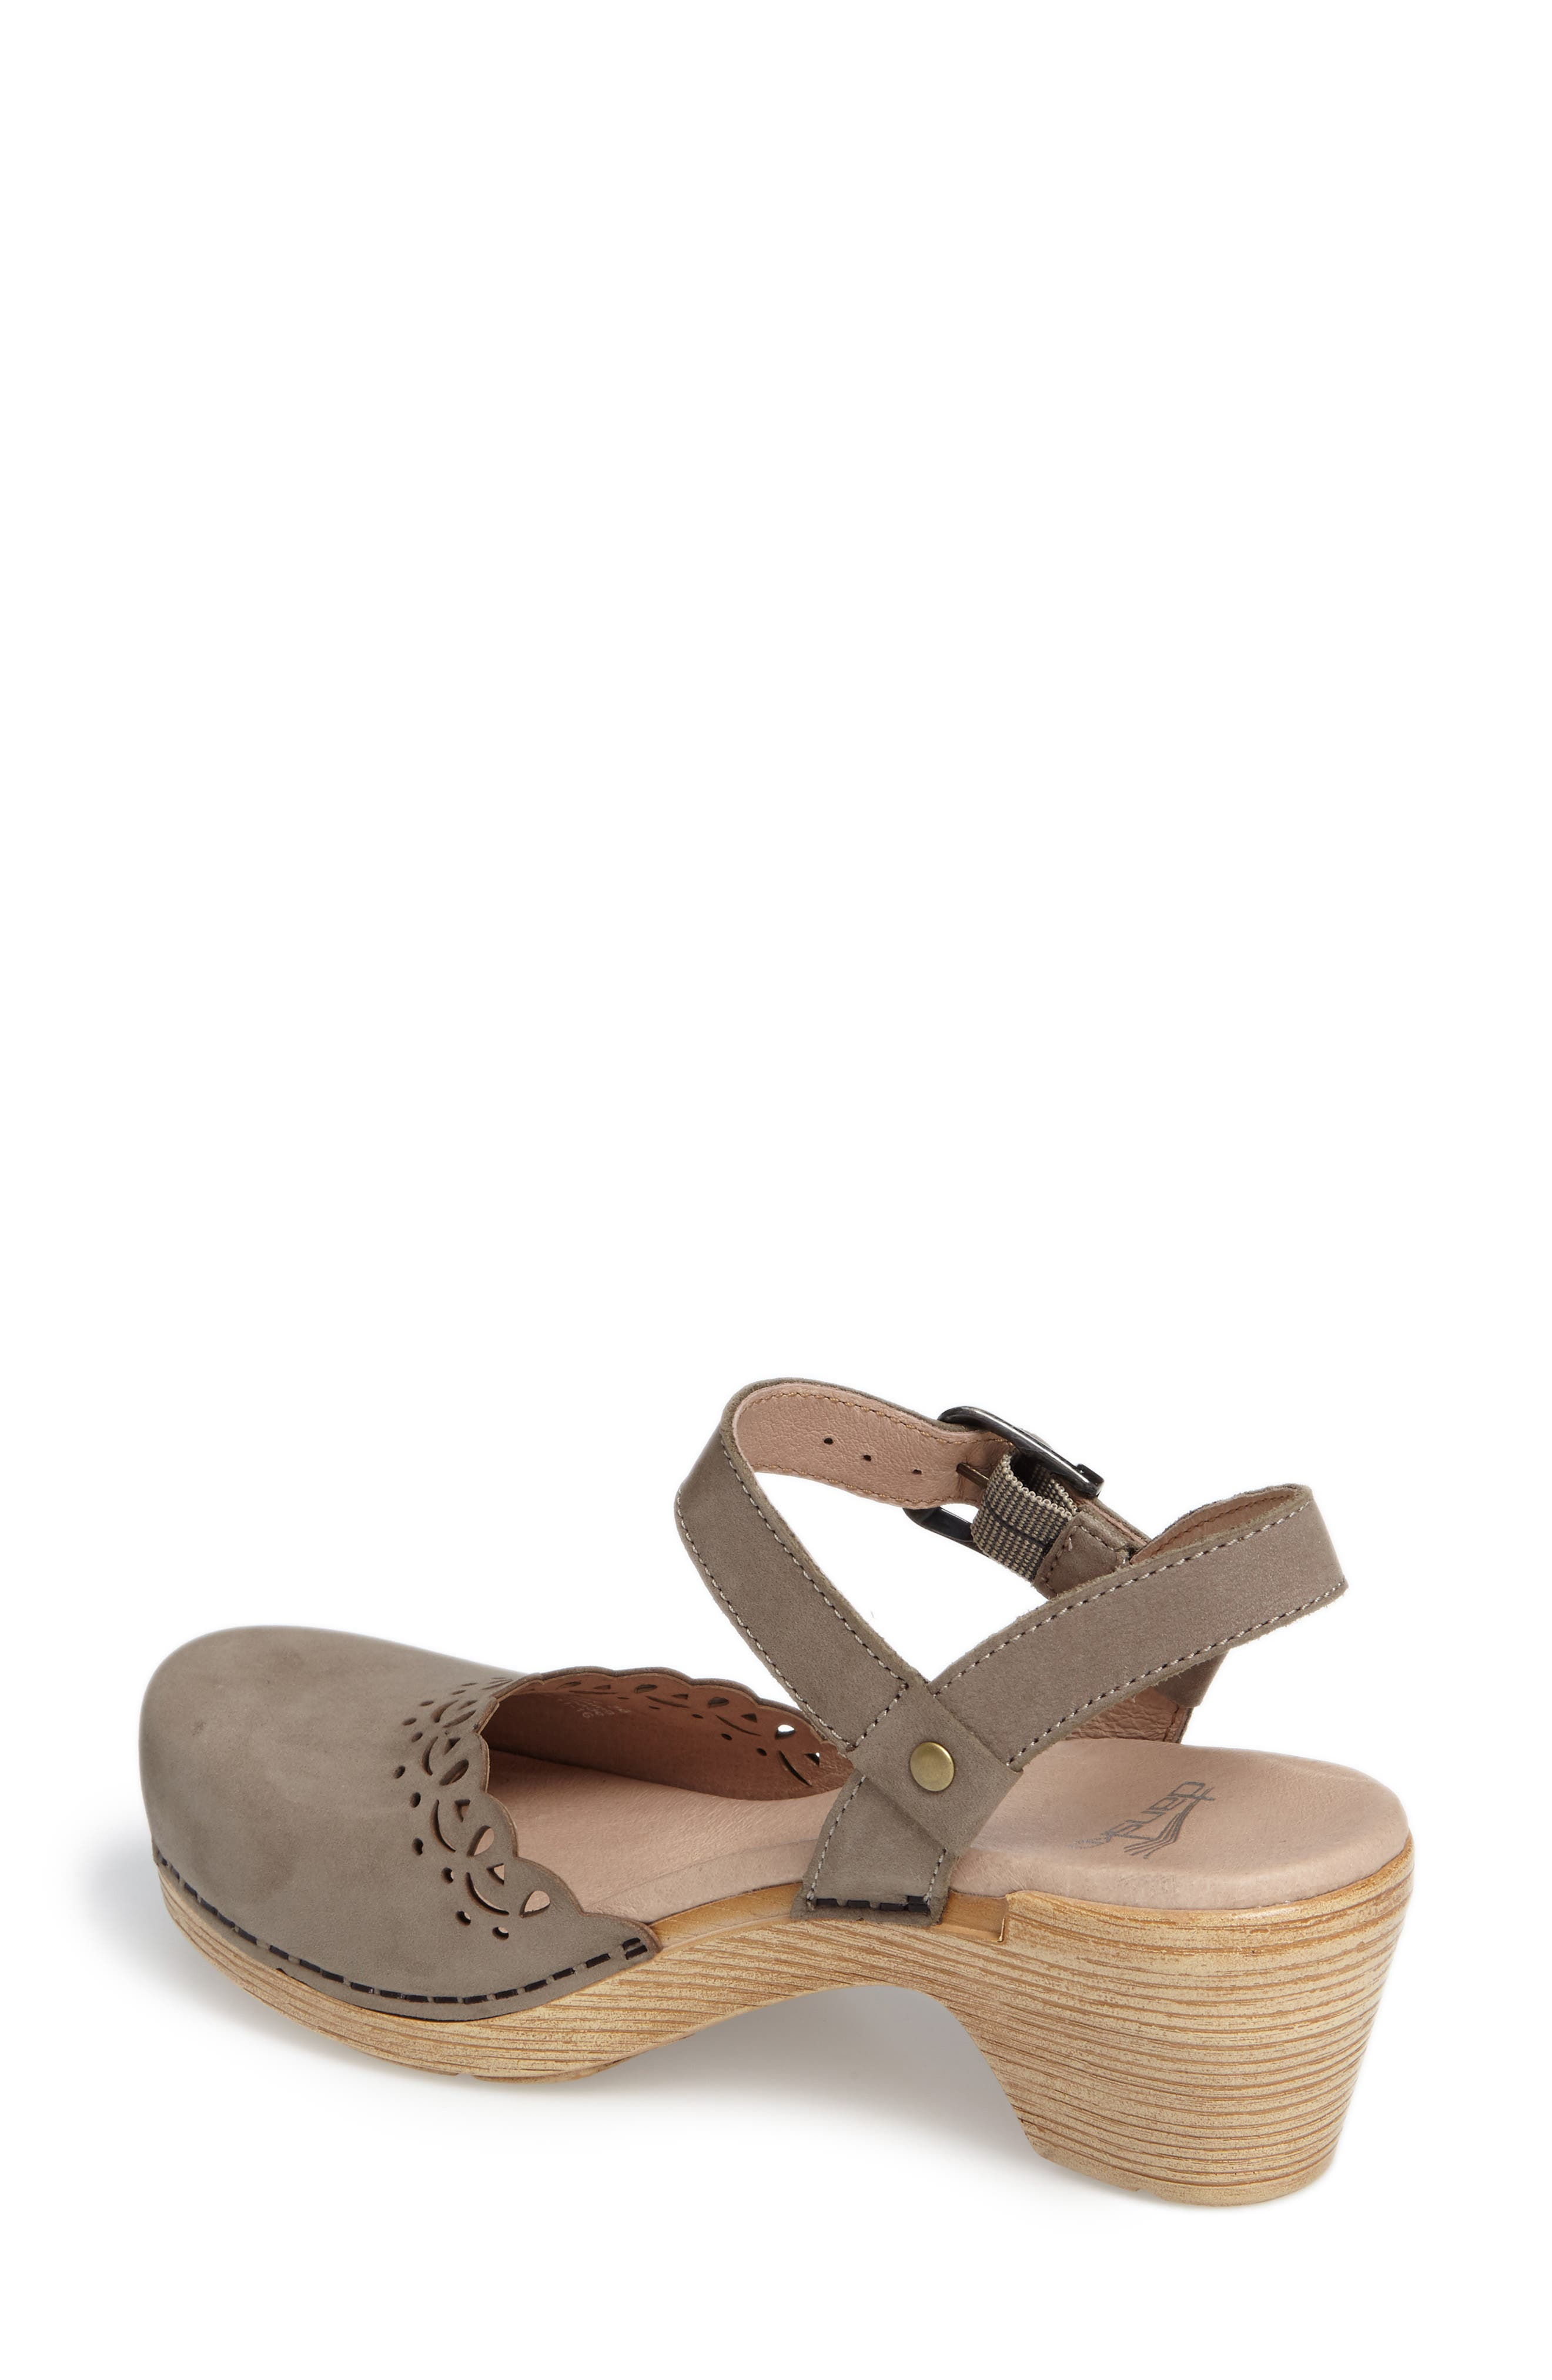 'Marta' Ankle Strap Clog,                             Alternate thumbnail 8, color,